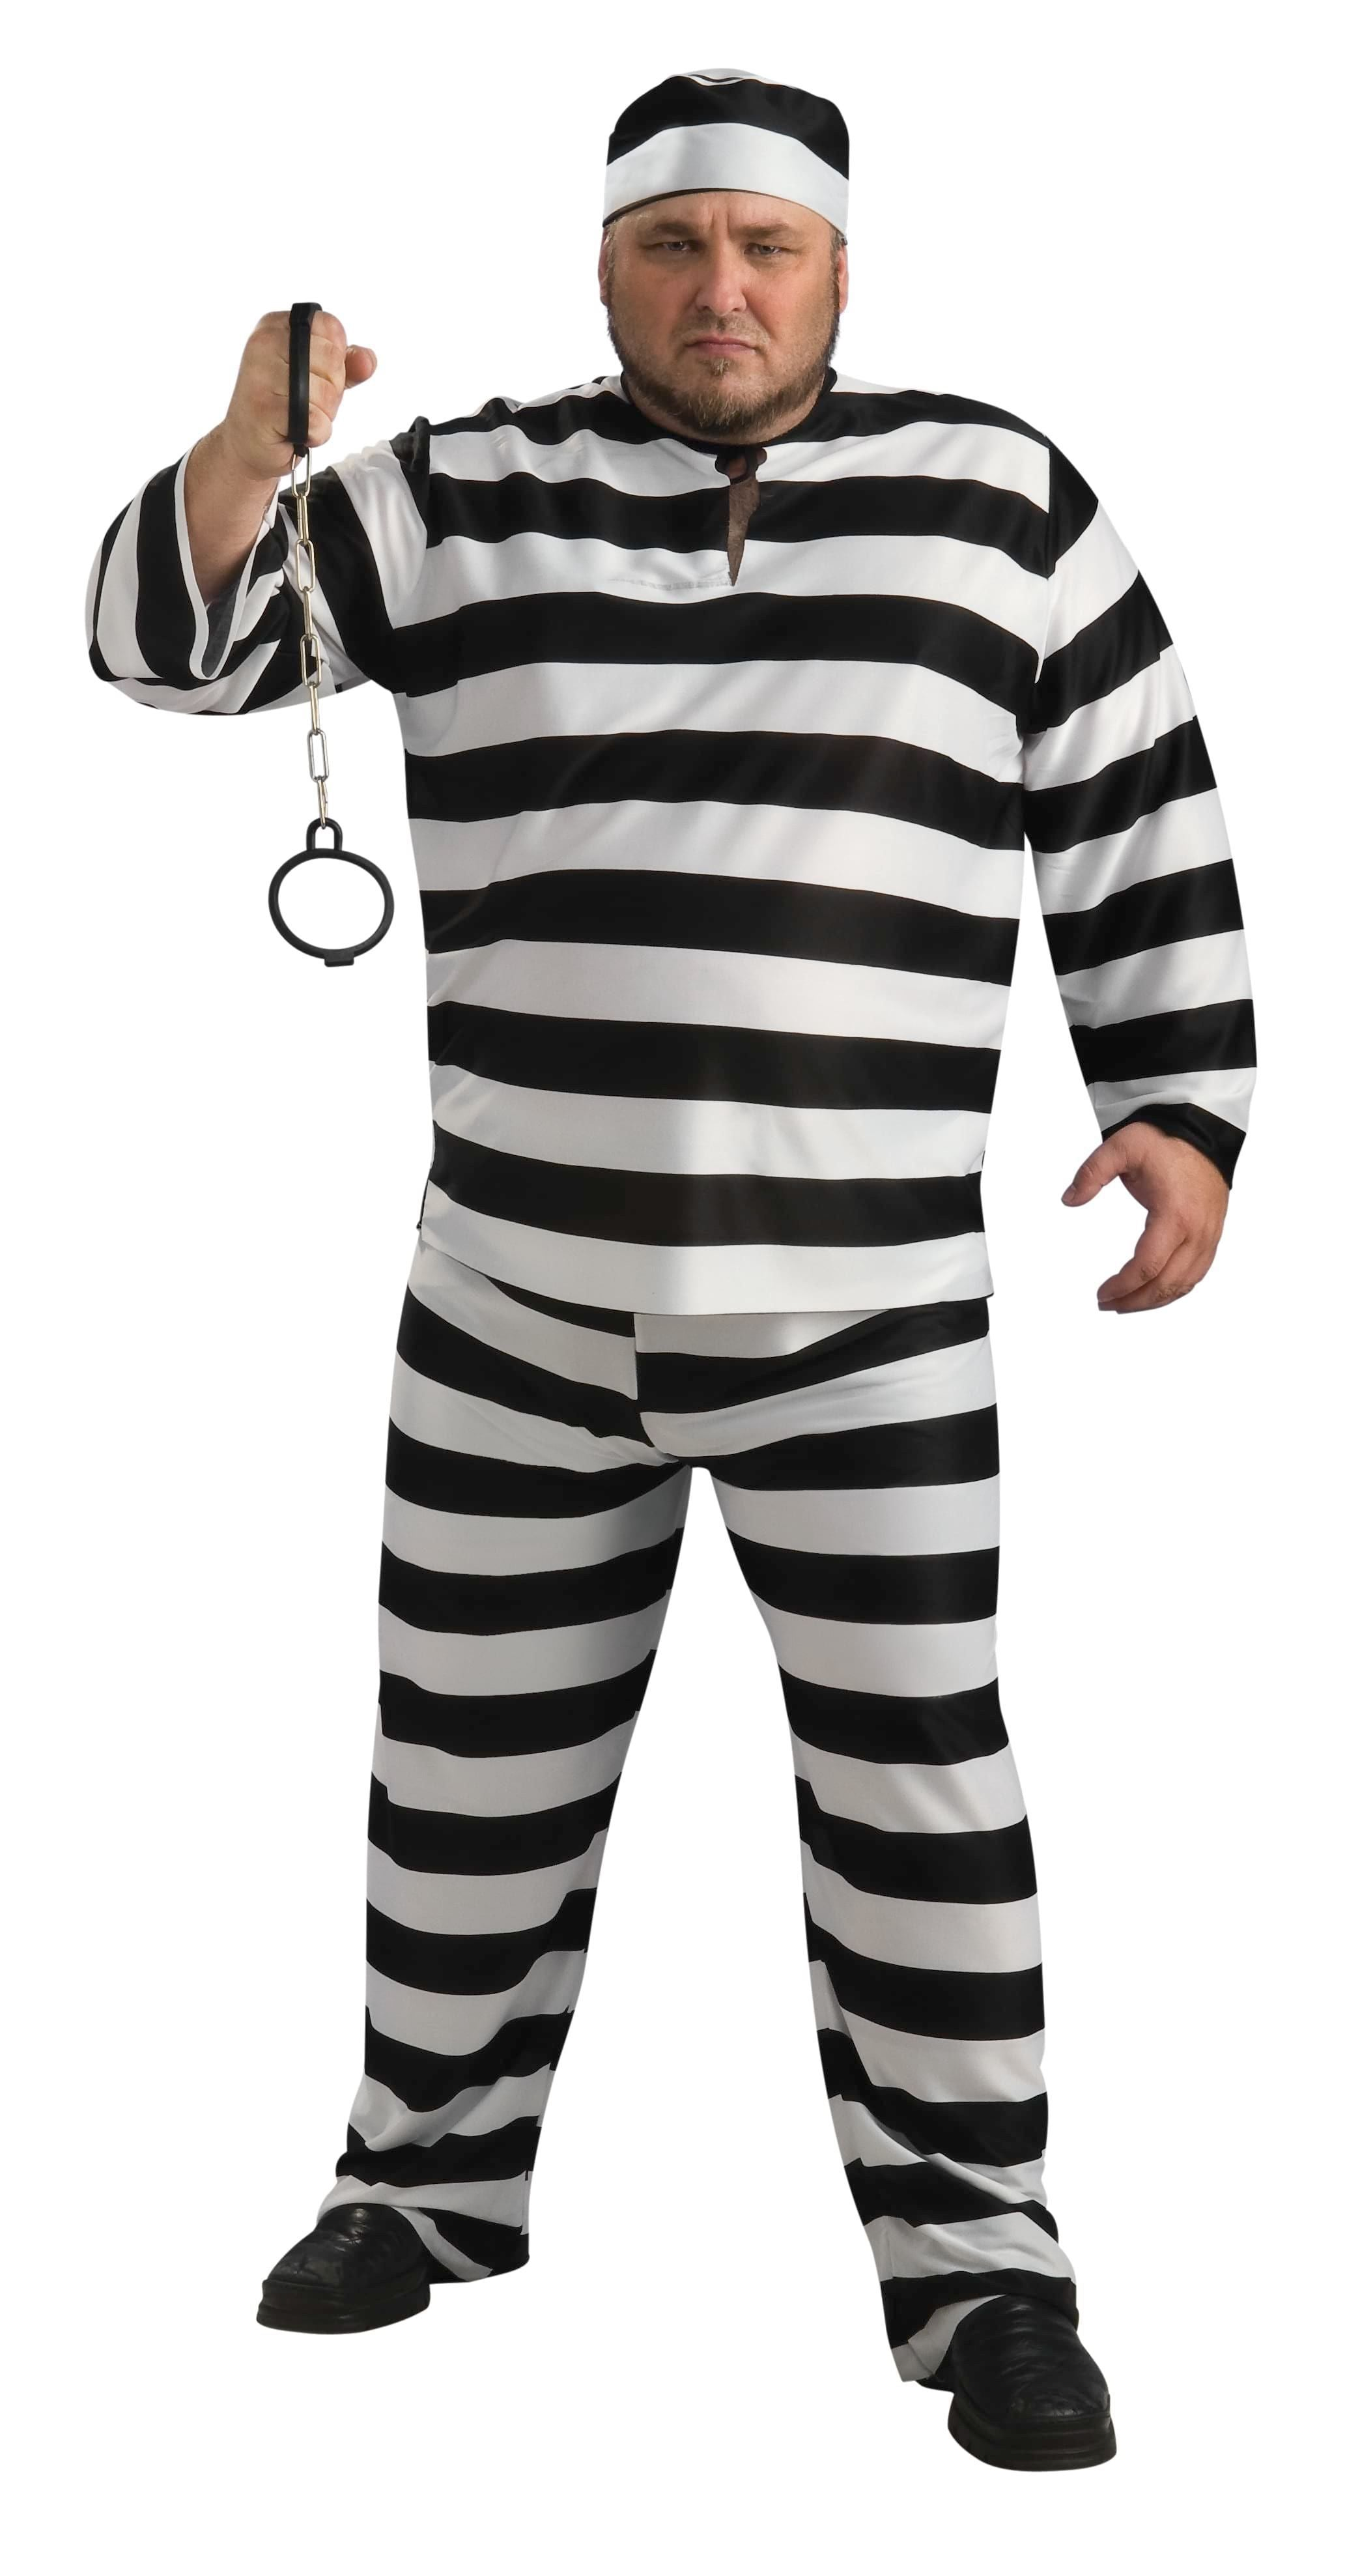 e7792b2f495 Convict Man Prisoner Plus Size Costume